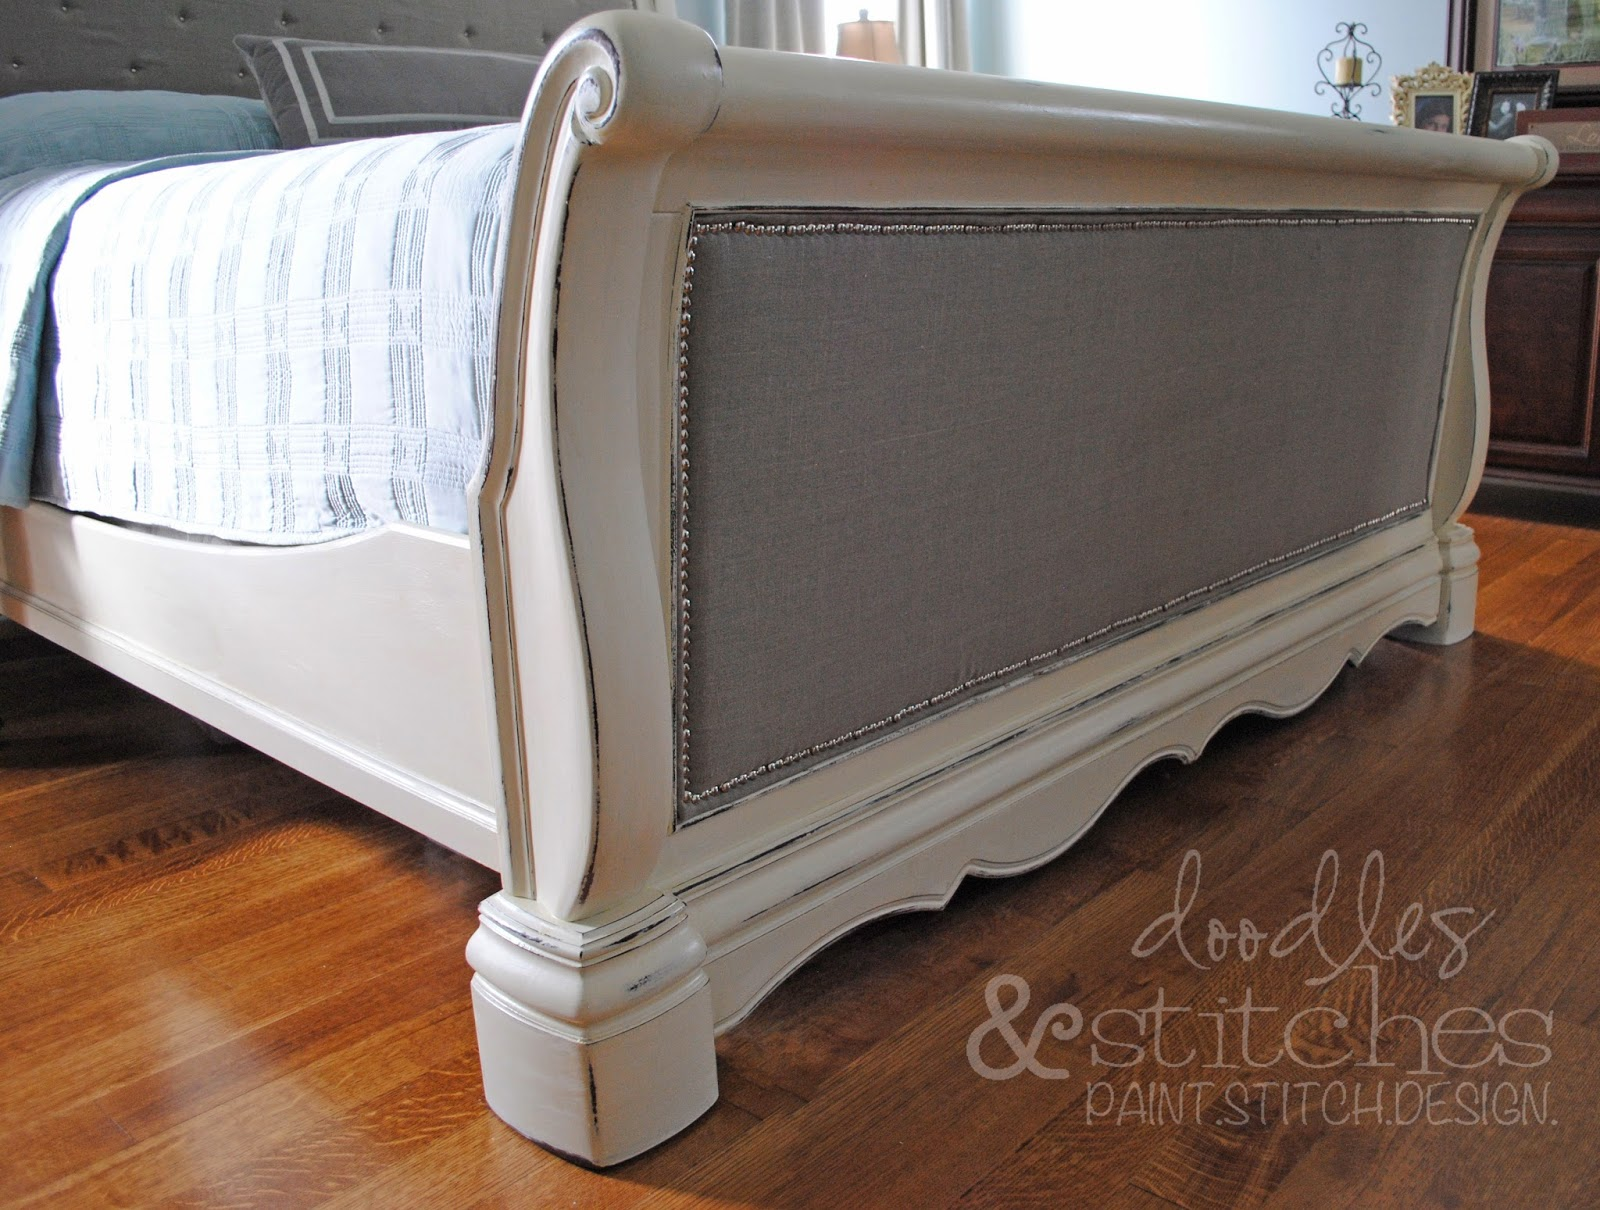 Tufted sleigh bed diy - This Project Was So Much Easier Than I Ever Imagined And That Ugly Old Sleigh Bed The One That I Was Ready To Sell On Craigslist Is Now My Favorite Piece